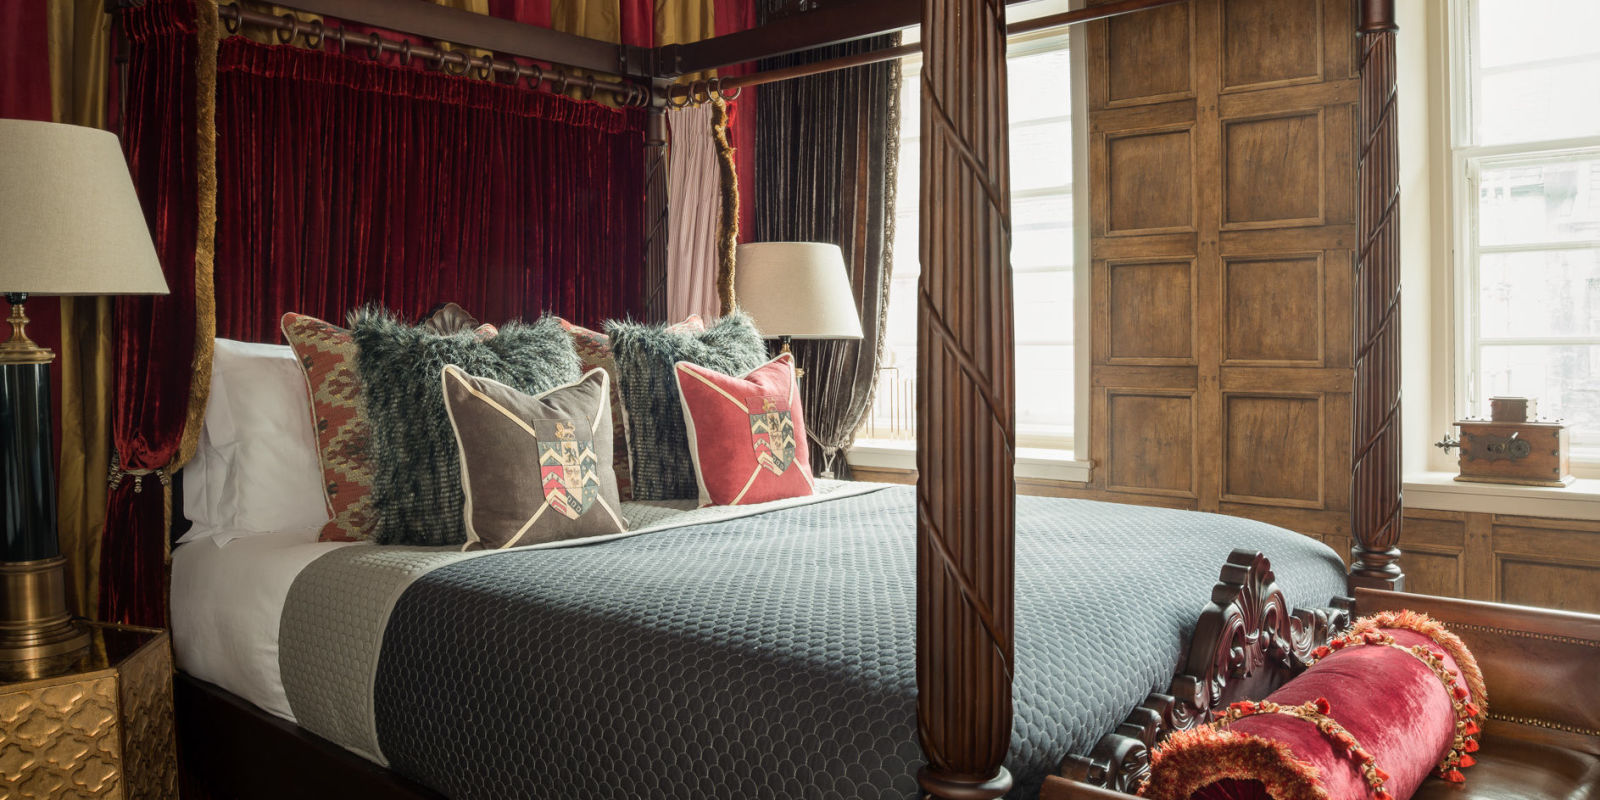 You Can Now Stay In This Luxury Harry Potter Themed